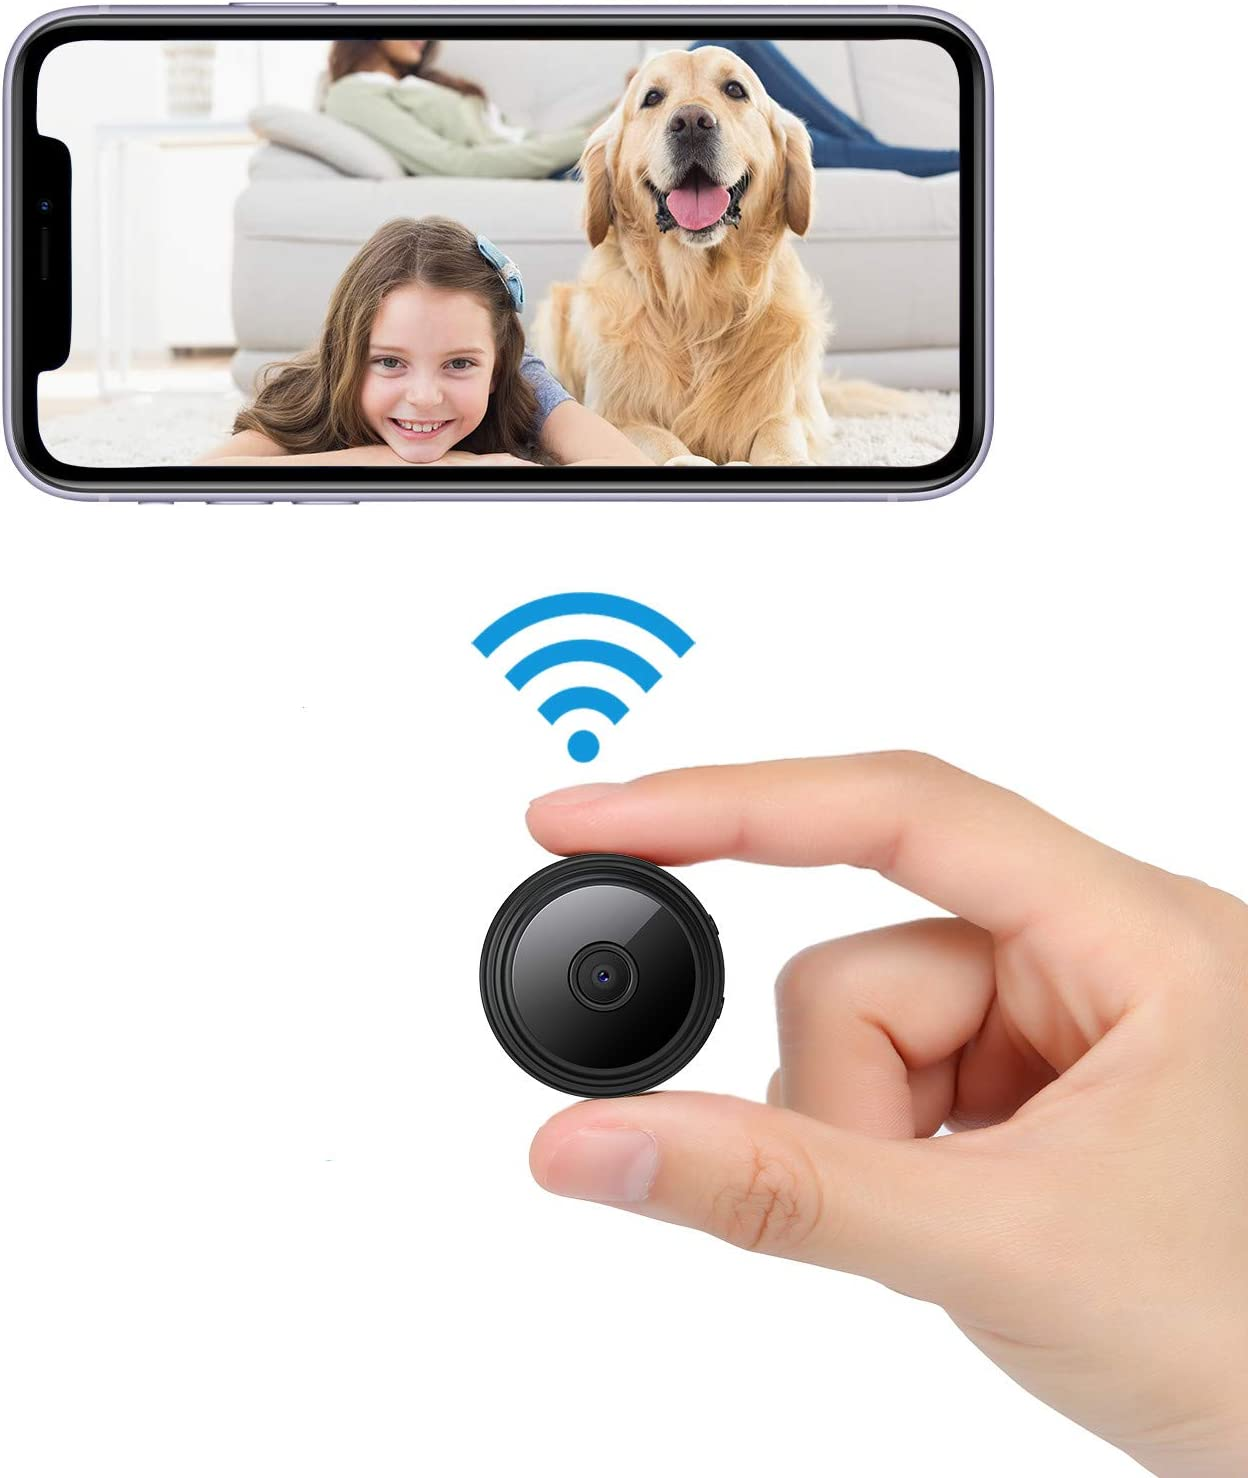 1080P Hidden Camera for Home Security Spy Camera WiFi Mini Camera Wireless with Audio Nanny Cam with Cell Phone App Night Vision Movement Detection Video Recording Remote View